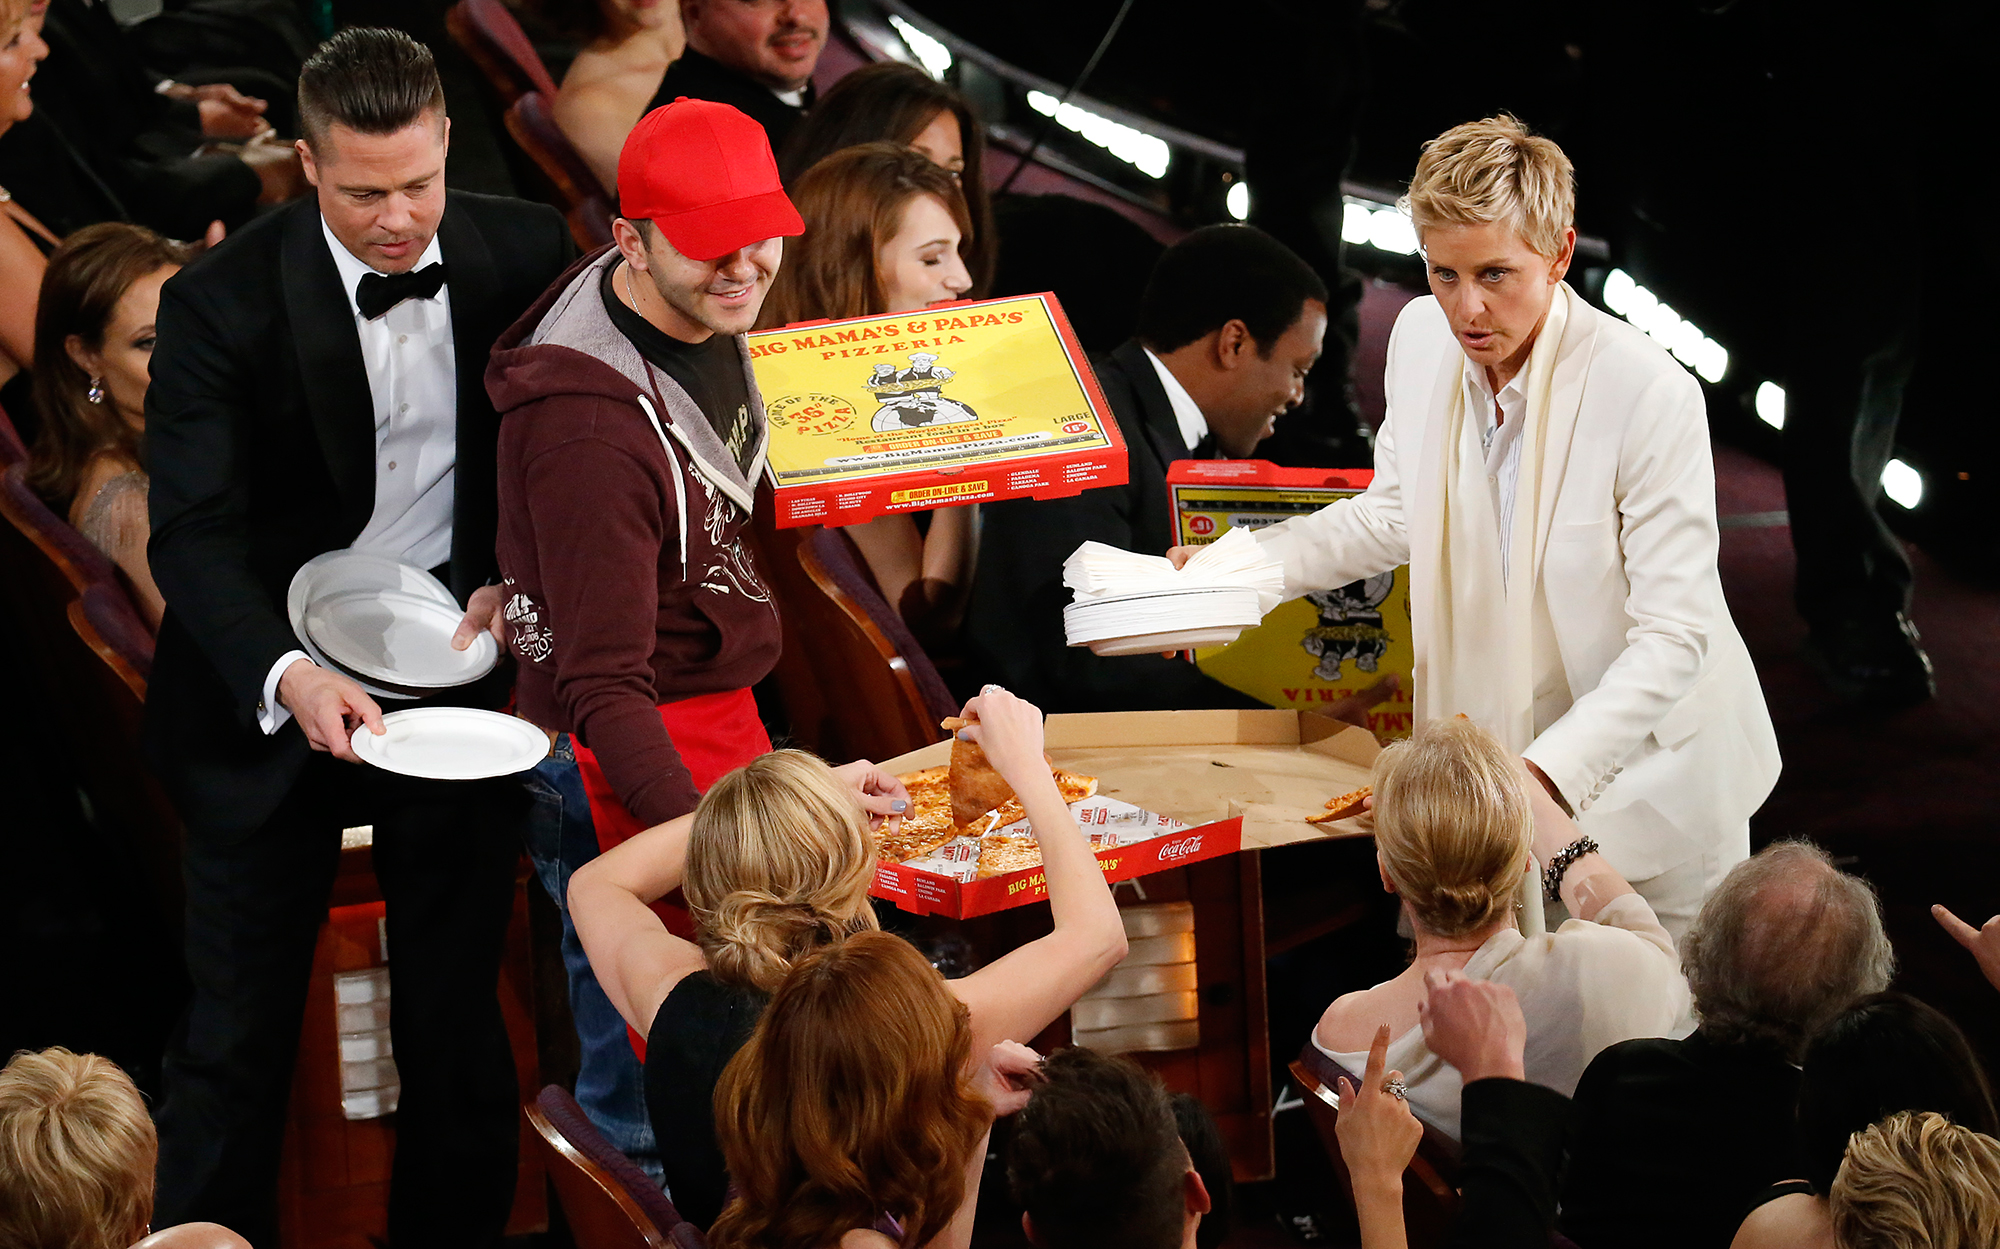 Let Them Eat! Melissa McCarthy, Gemma Chan and More Stars Who Brought Food to Awards Shows - Ellen DeGeneres has pizza delivered to the attendee during the 86th Annual Academy Awards on Sunday, March 2, 2014 at the Dolby Theatre in Hollywood, CA.